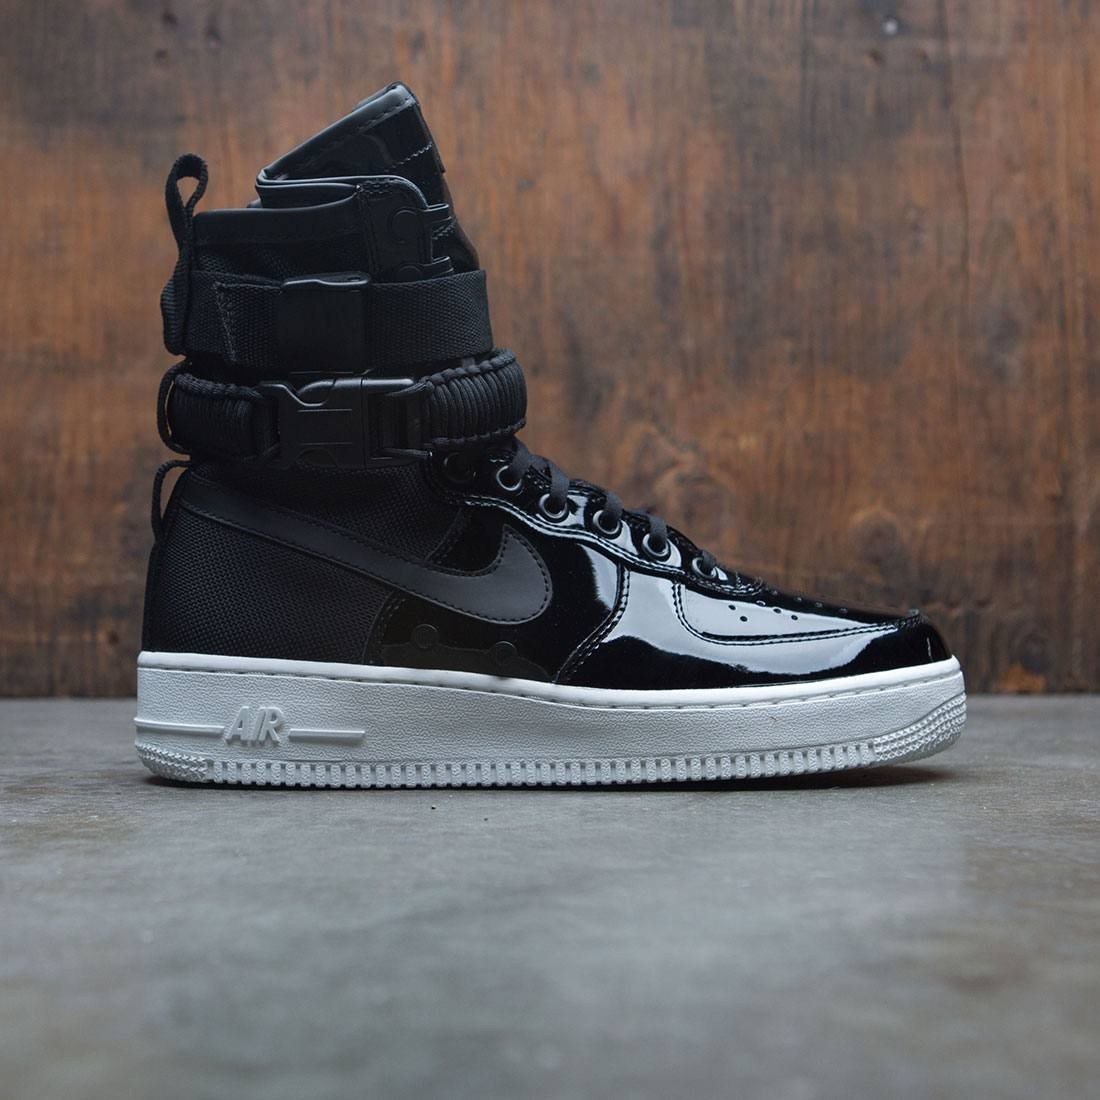 nike women air force 1 sf special edition premium black black reflect  silver cool grey e66c86e82